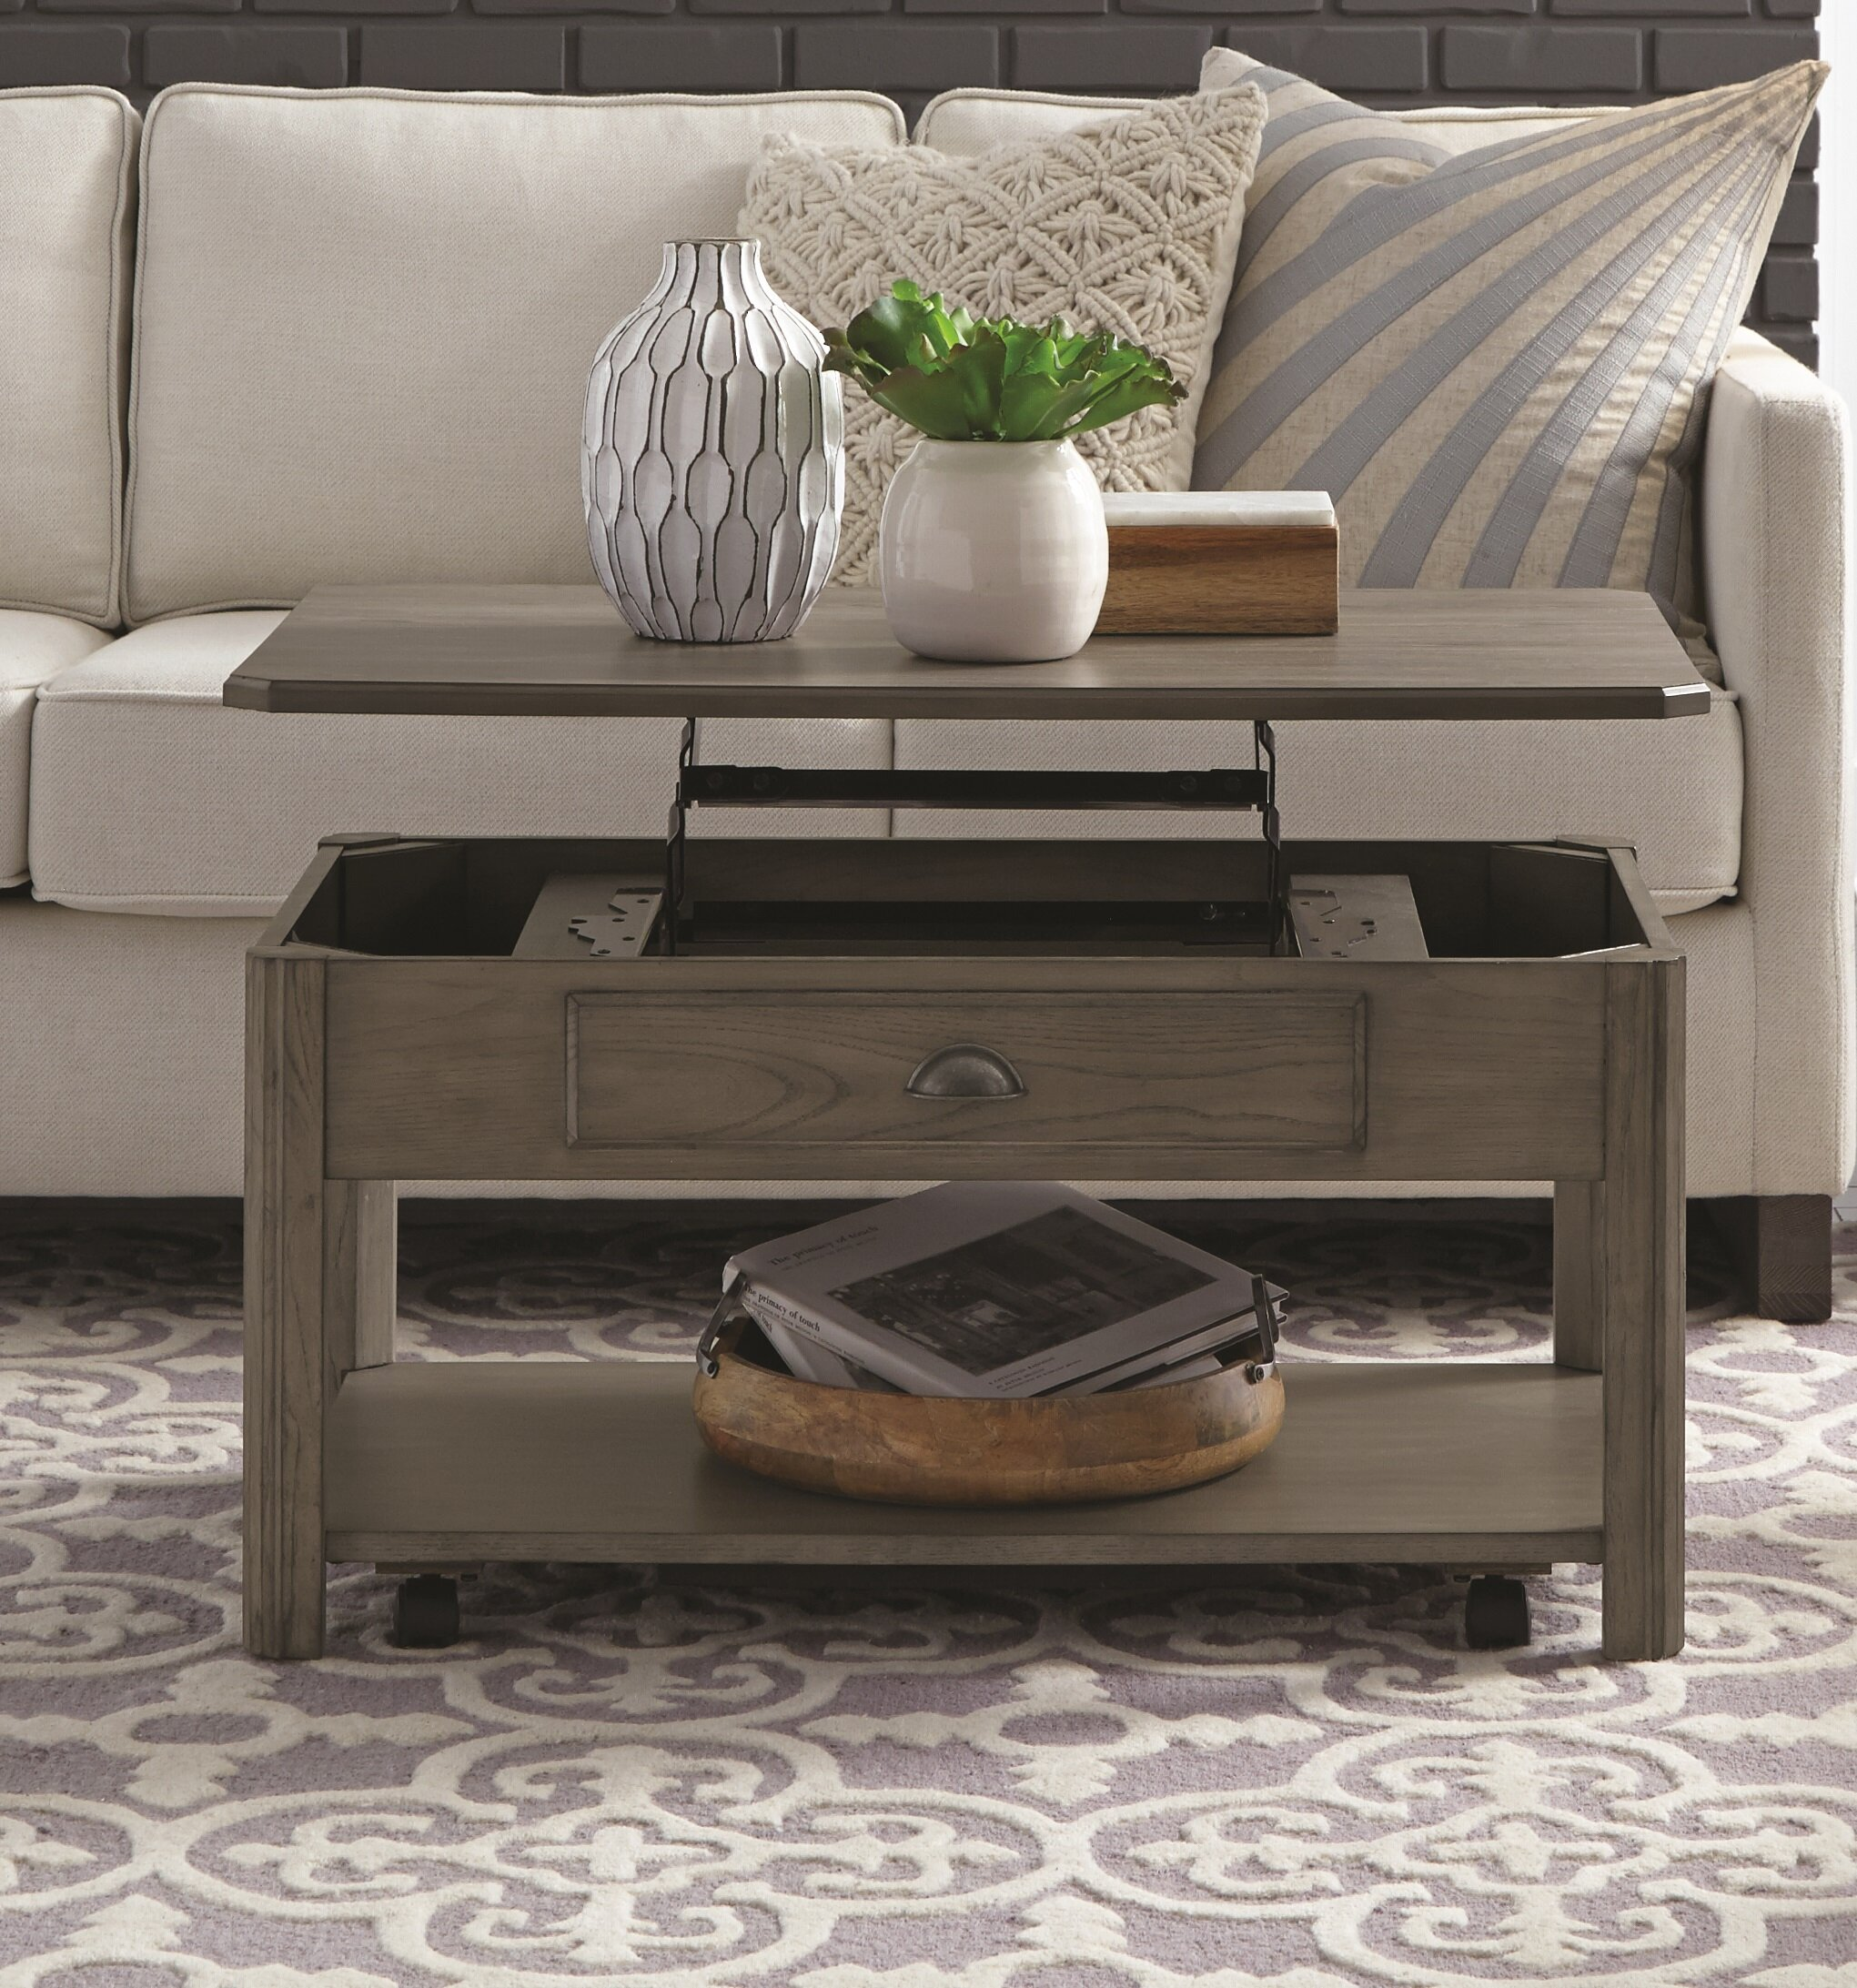 Darby Home Co Fernville Lift Top Coffee Table With Storage